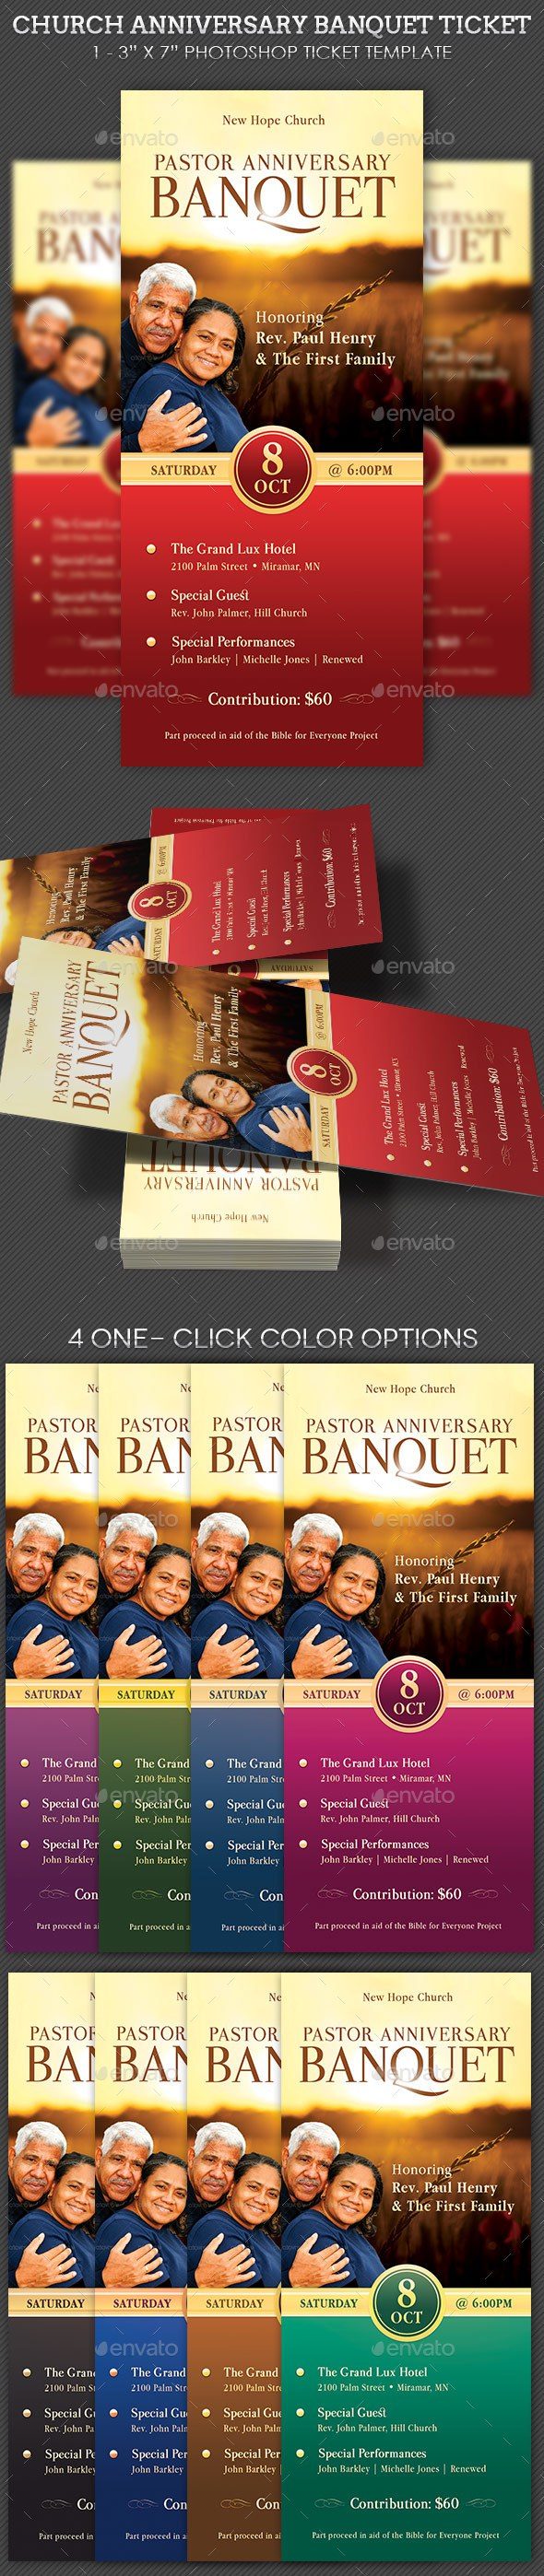 pastor anniversary banquet ticket template miscellaneous print